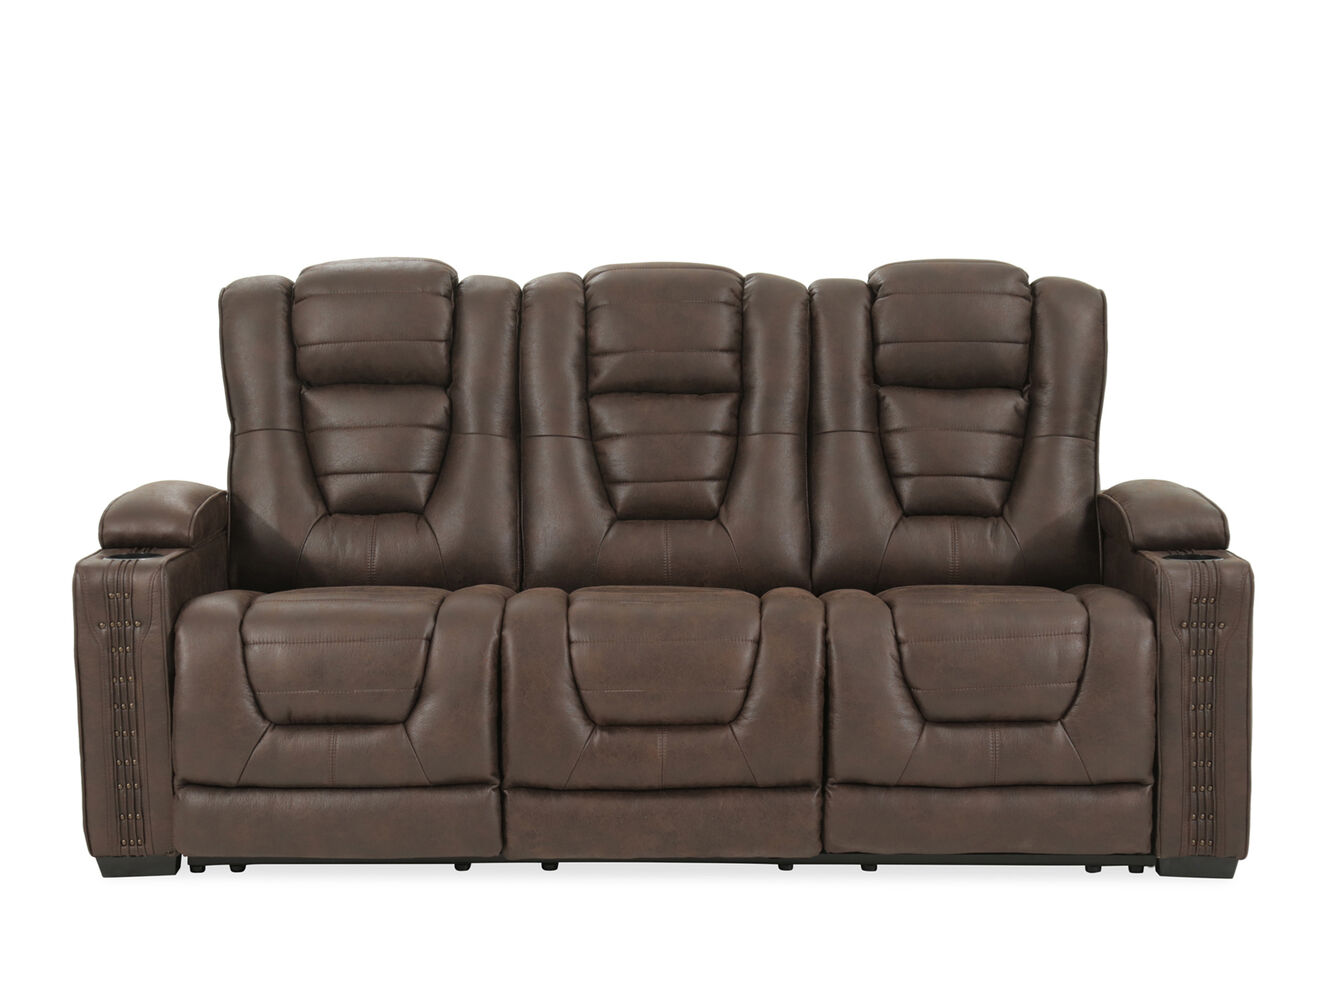 Power Reclining Microfiber 84 Sofa In Brown Mathis Brothers Furniture